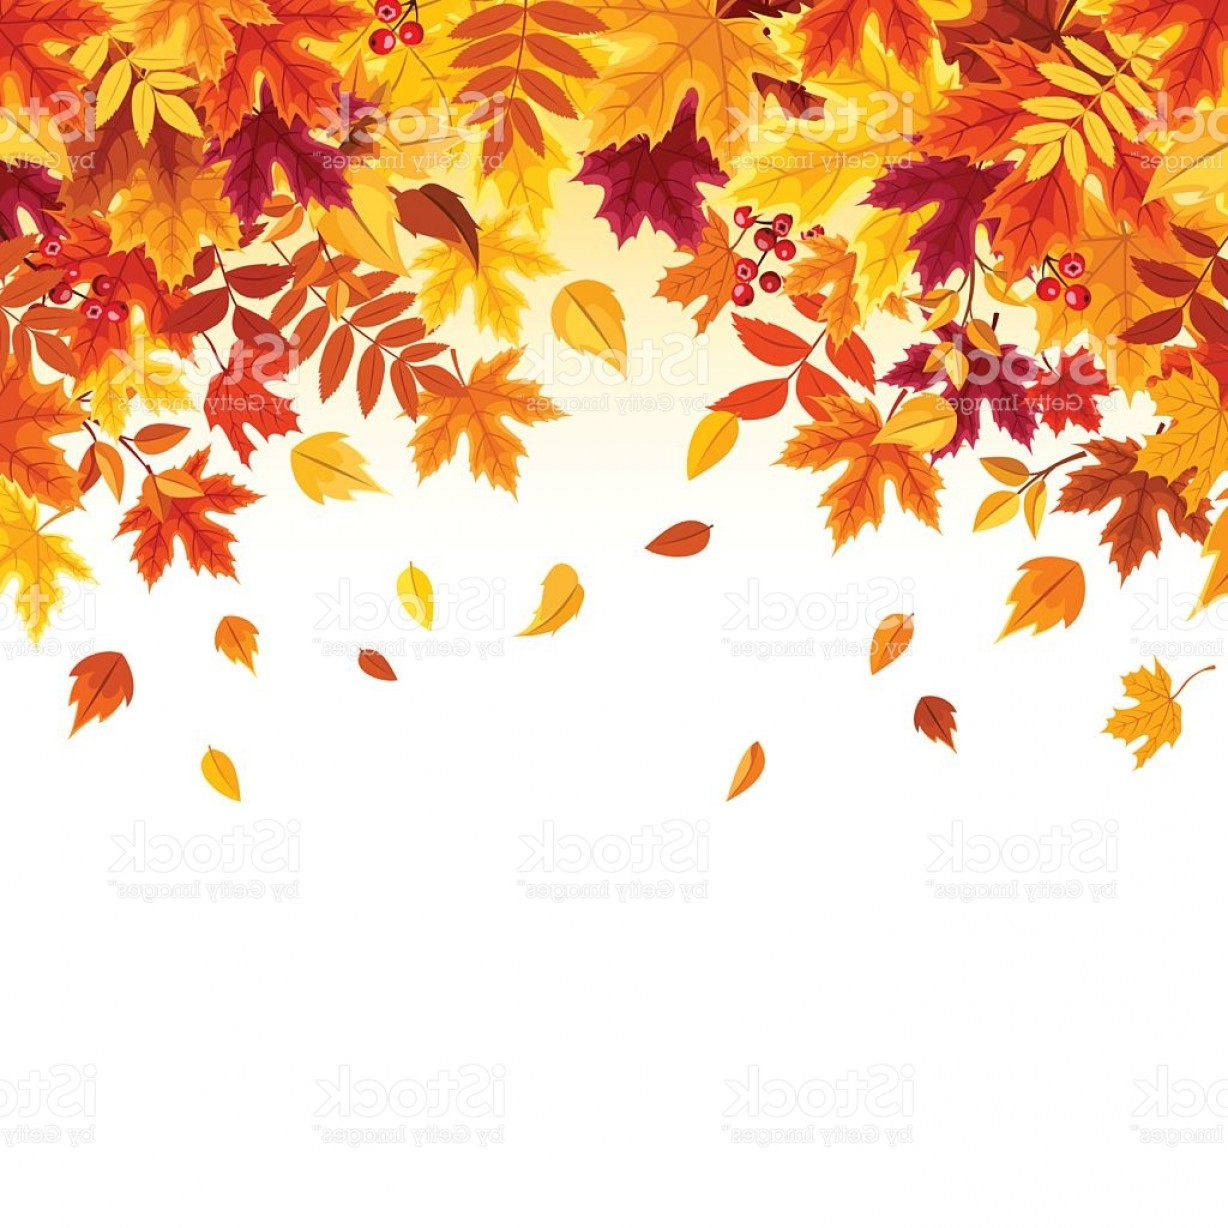 1228x1228 Background With Colorful Falling Autumn Leaves Vector Illustration